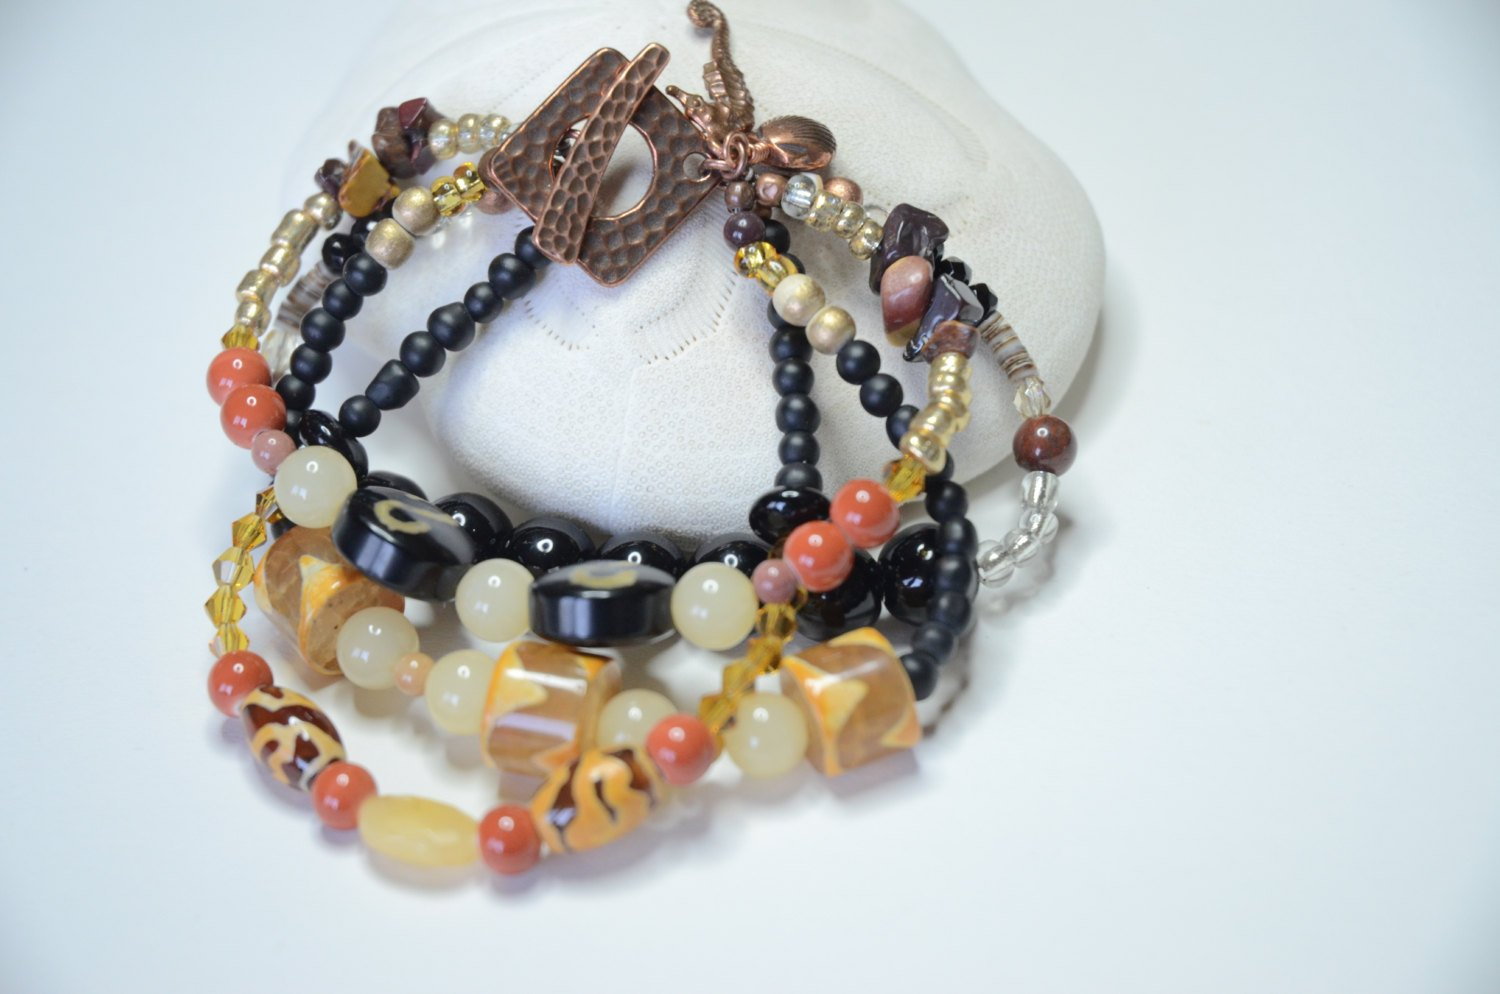 Copper Multistrand Mix Bead Bracelet in Black, Orange and Yellow